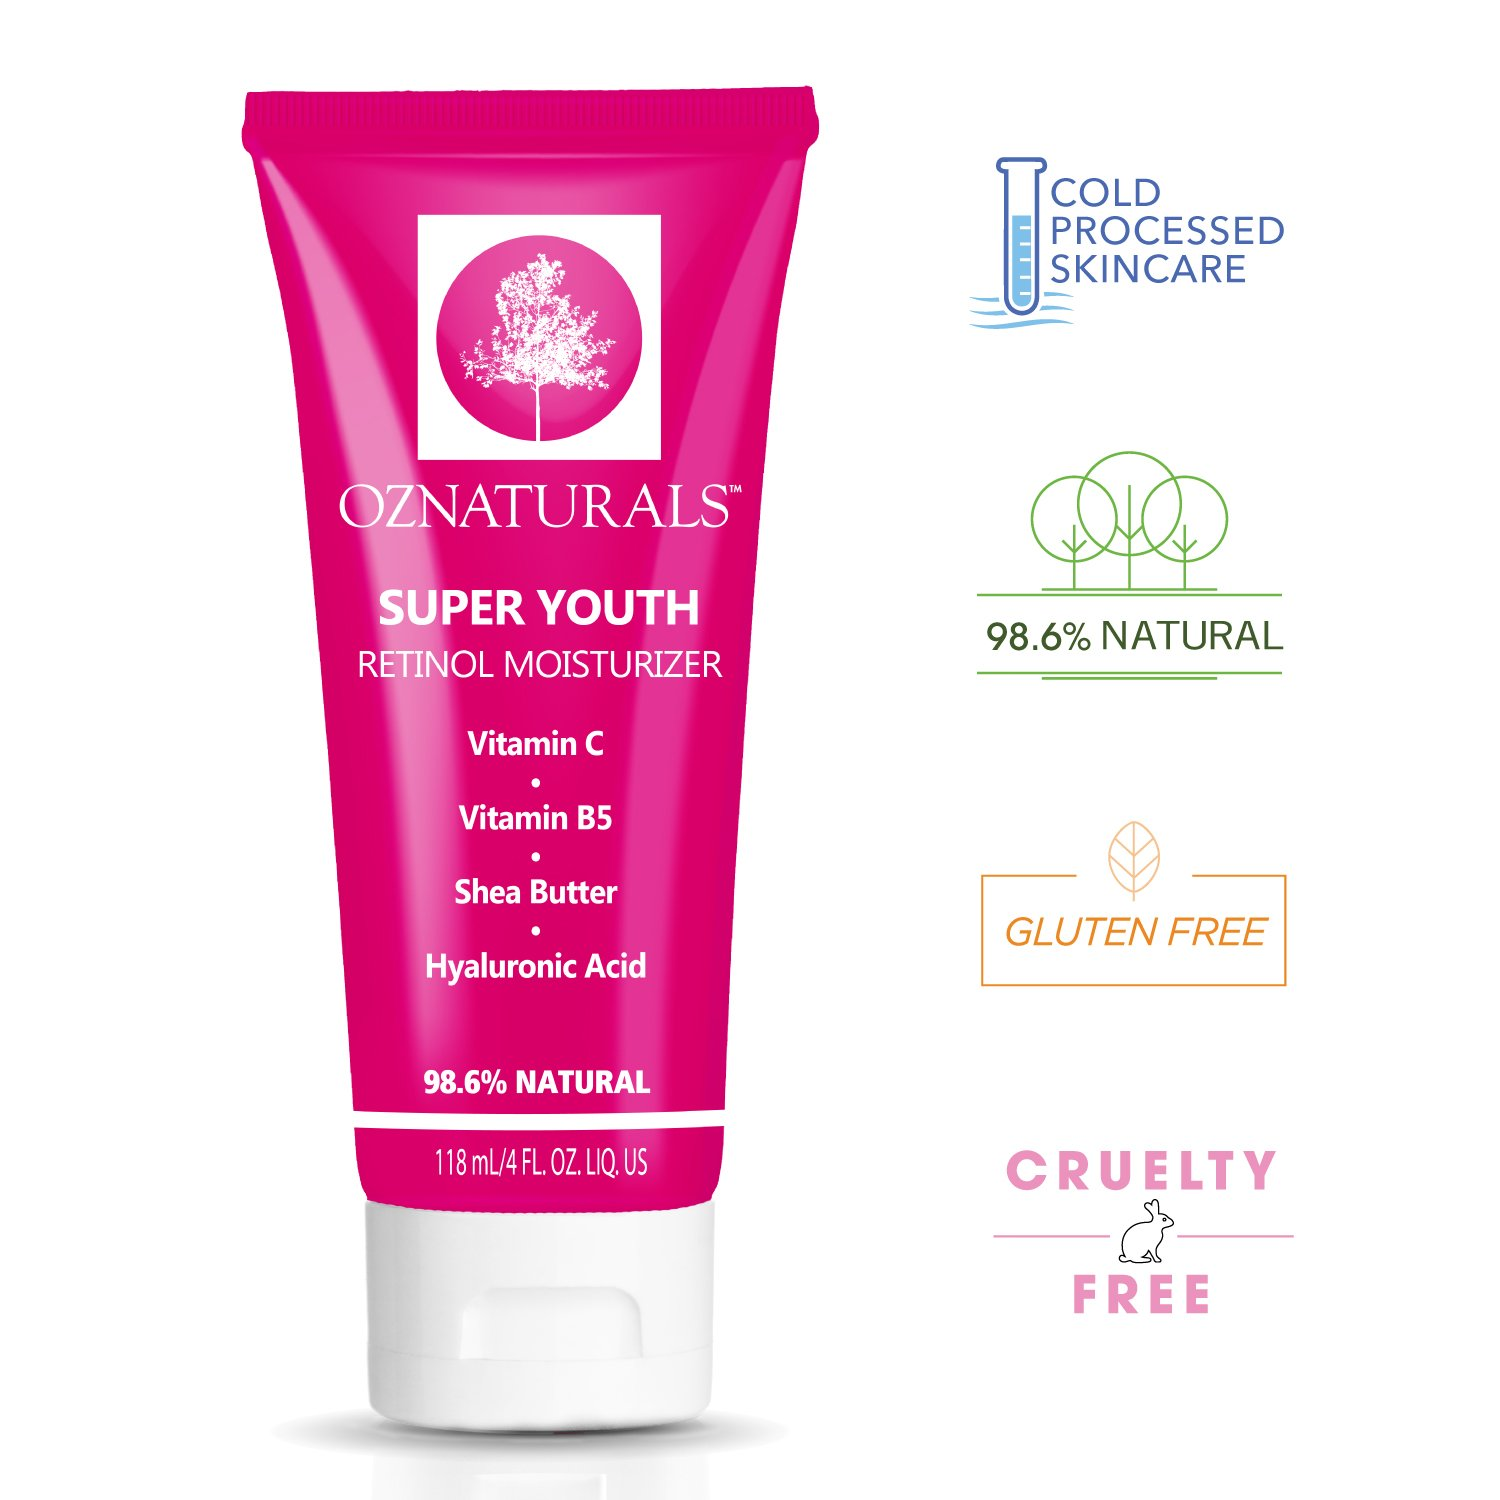 OZNaturals Pure Retinol Cream – Anti Wrinkle Anti Aging Retinol Night Cream Face Moisturizer With Retinol + Hyaluronic Acid. Experience The Most Effective Natural Skin Care. 4 fl.oz by OZ Naturals (Image #3)